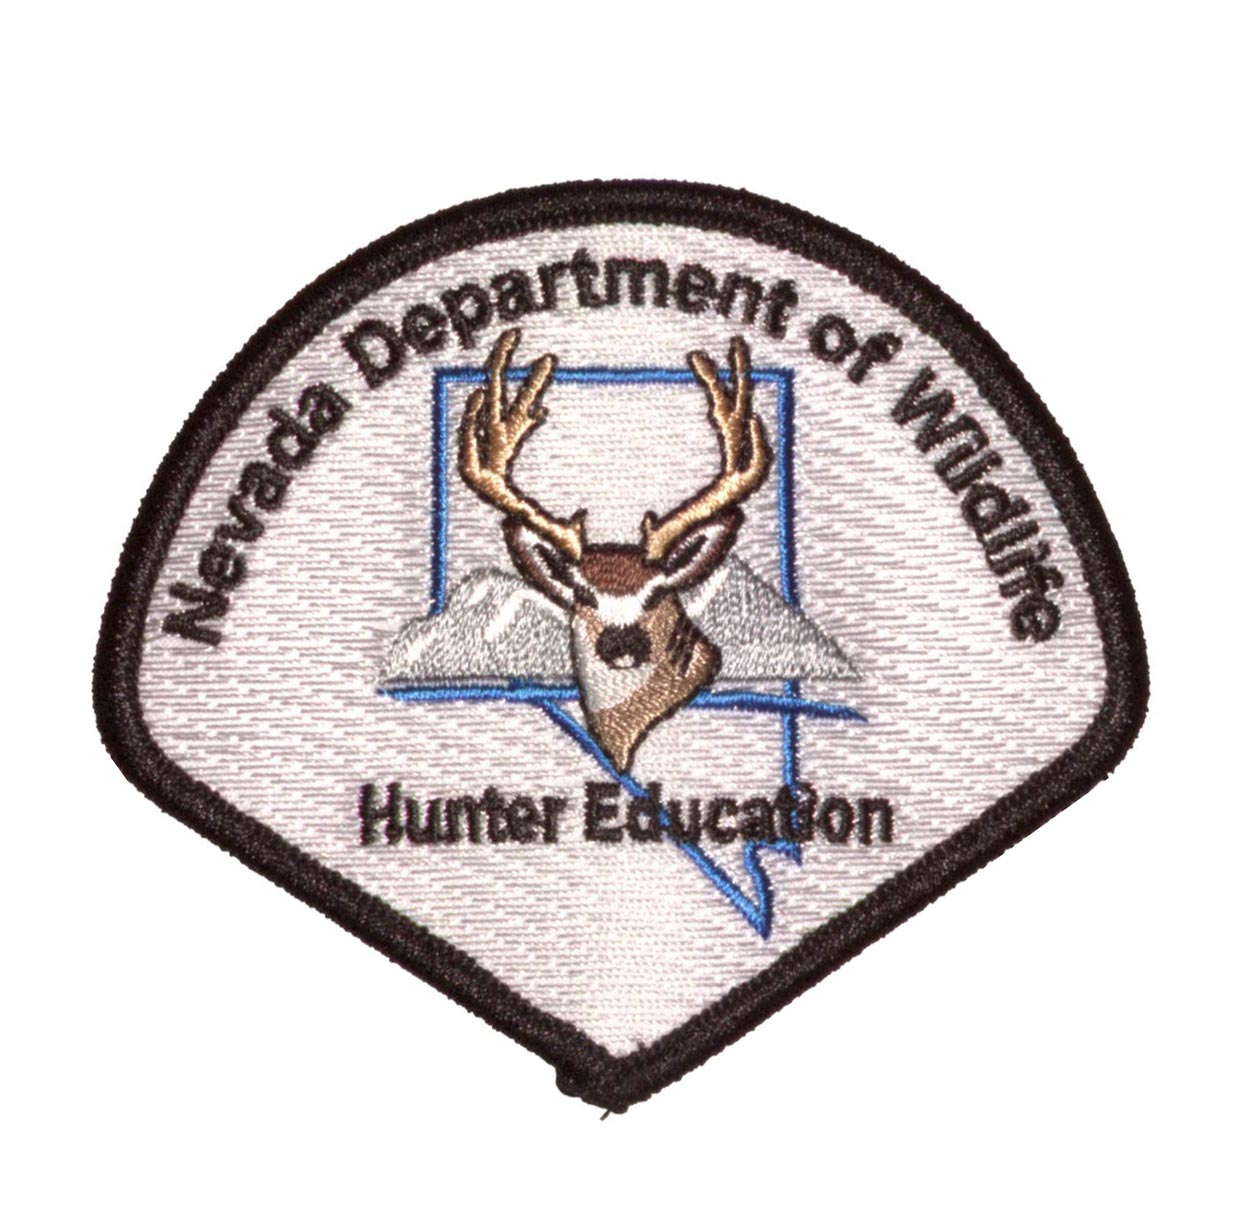 E17266-Custom-Patches-State.jpg